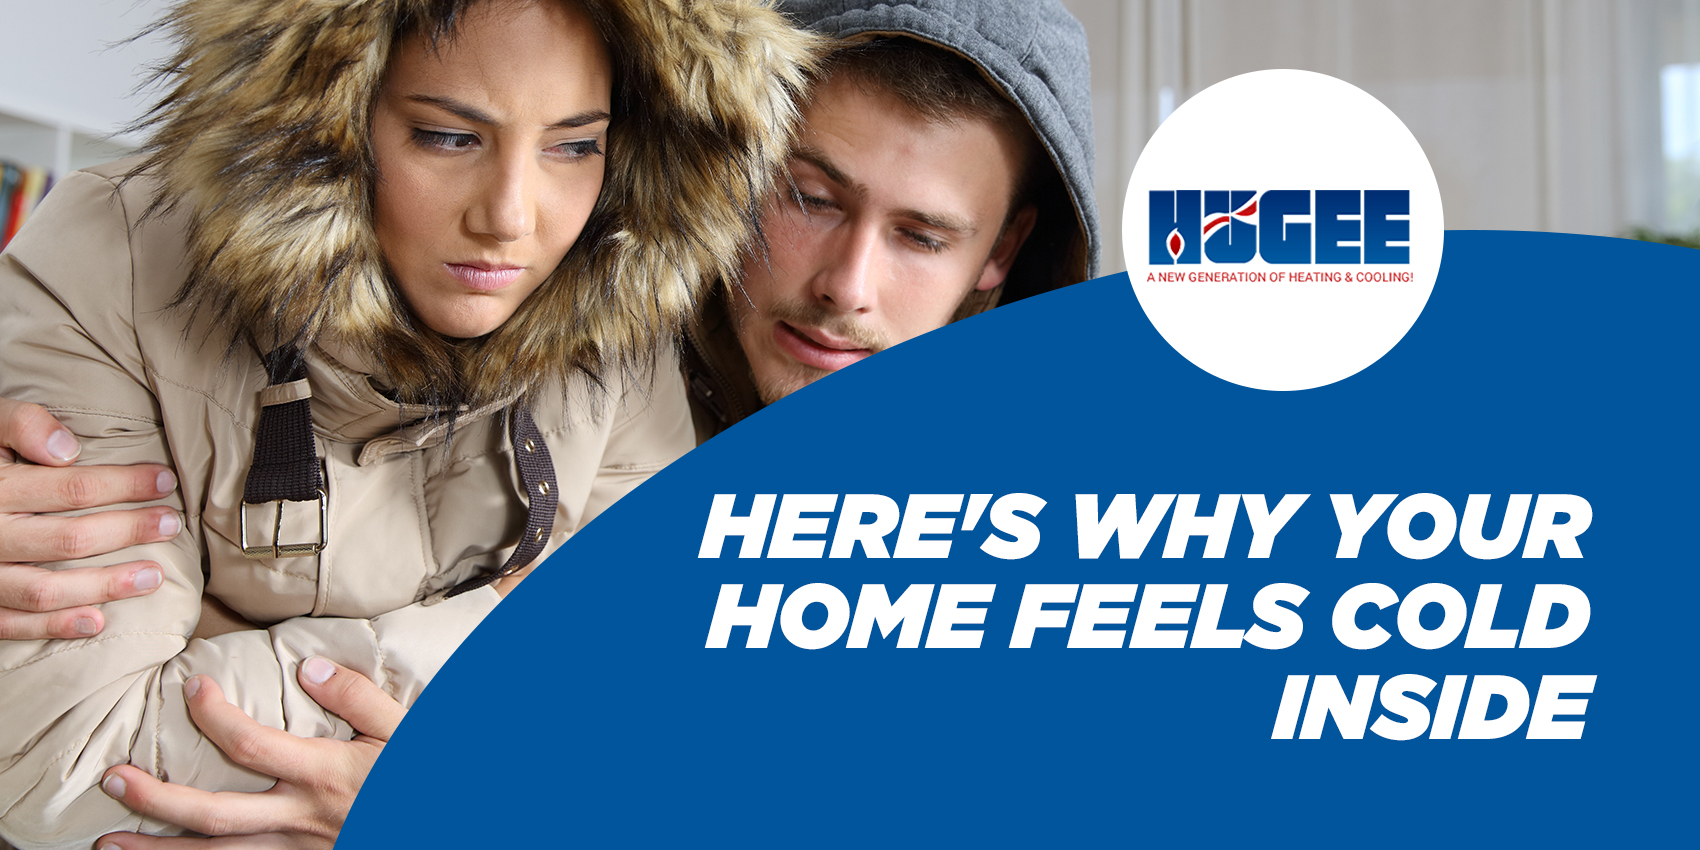 Here's Why Your Home Feels Cold Inside